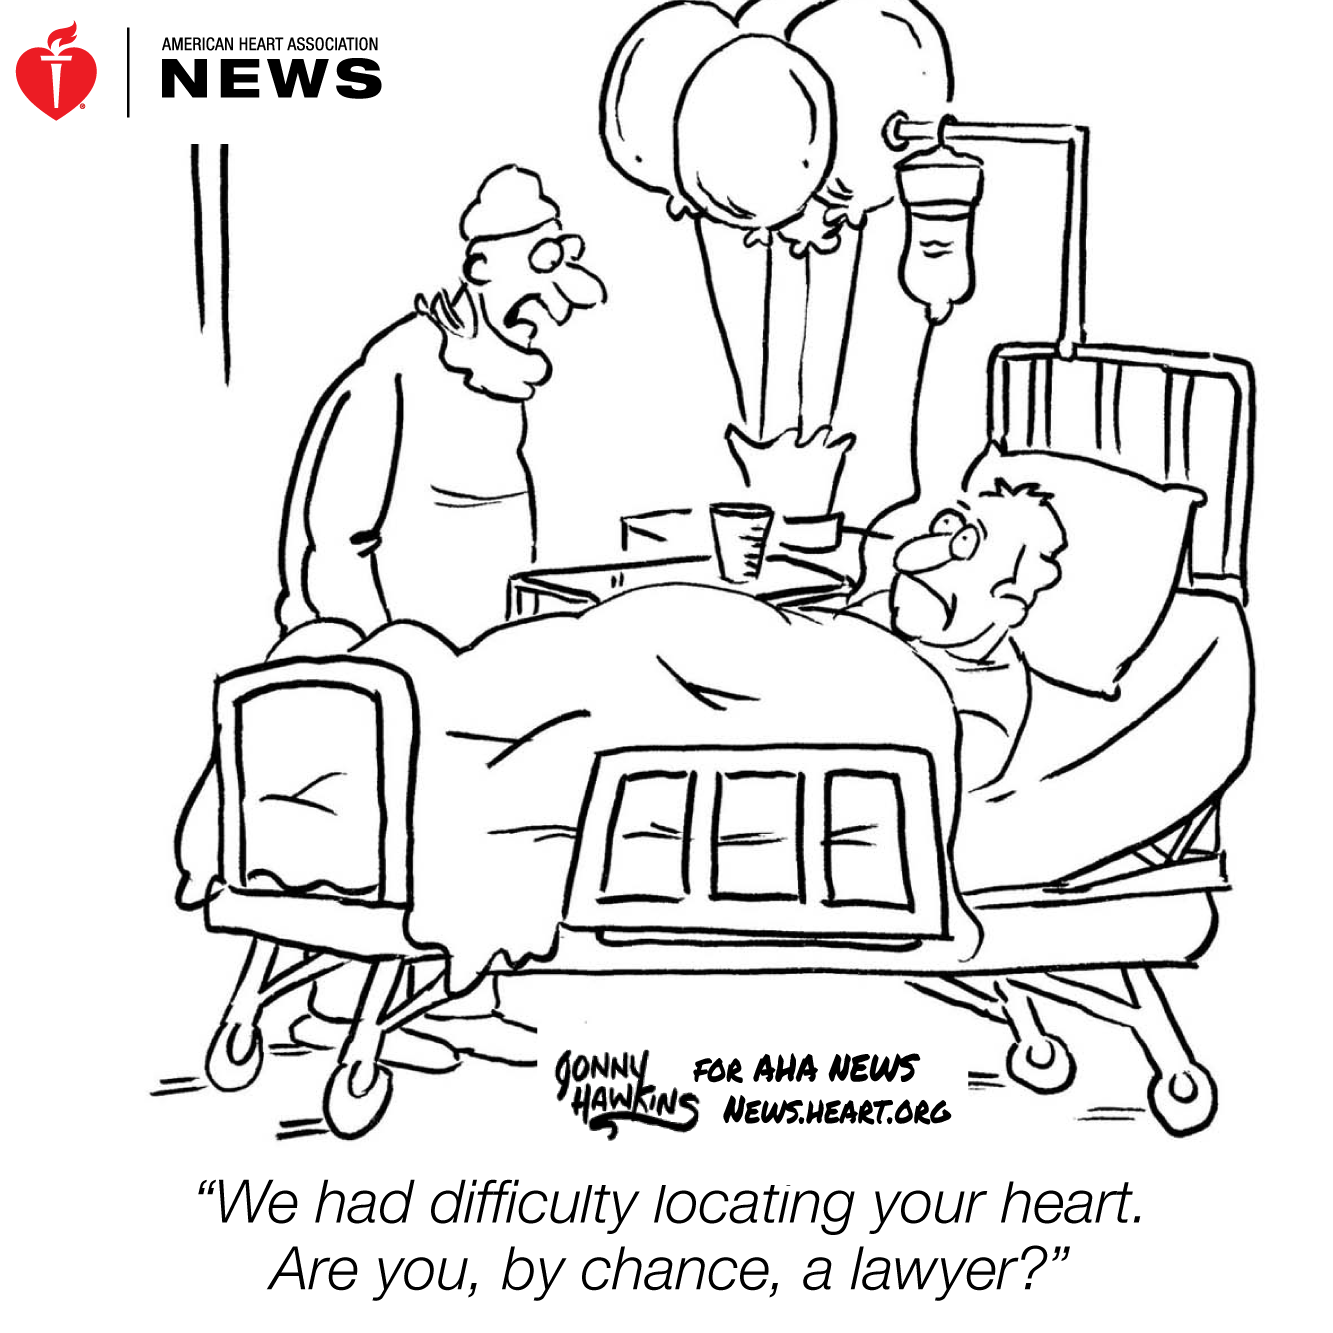 It S A Doctor Joke And A Lawyer Joke Check Out More Hearty Humor